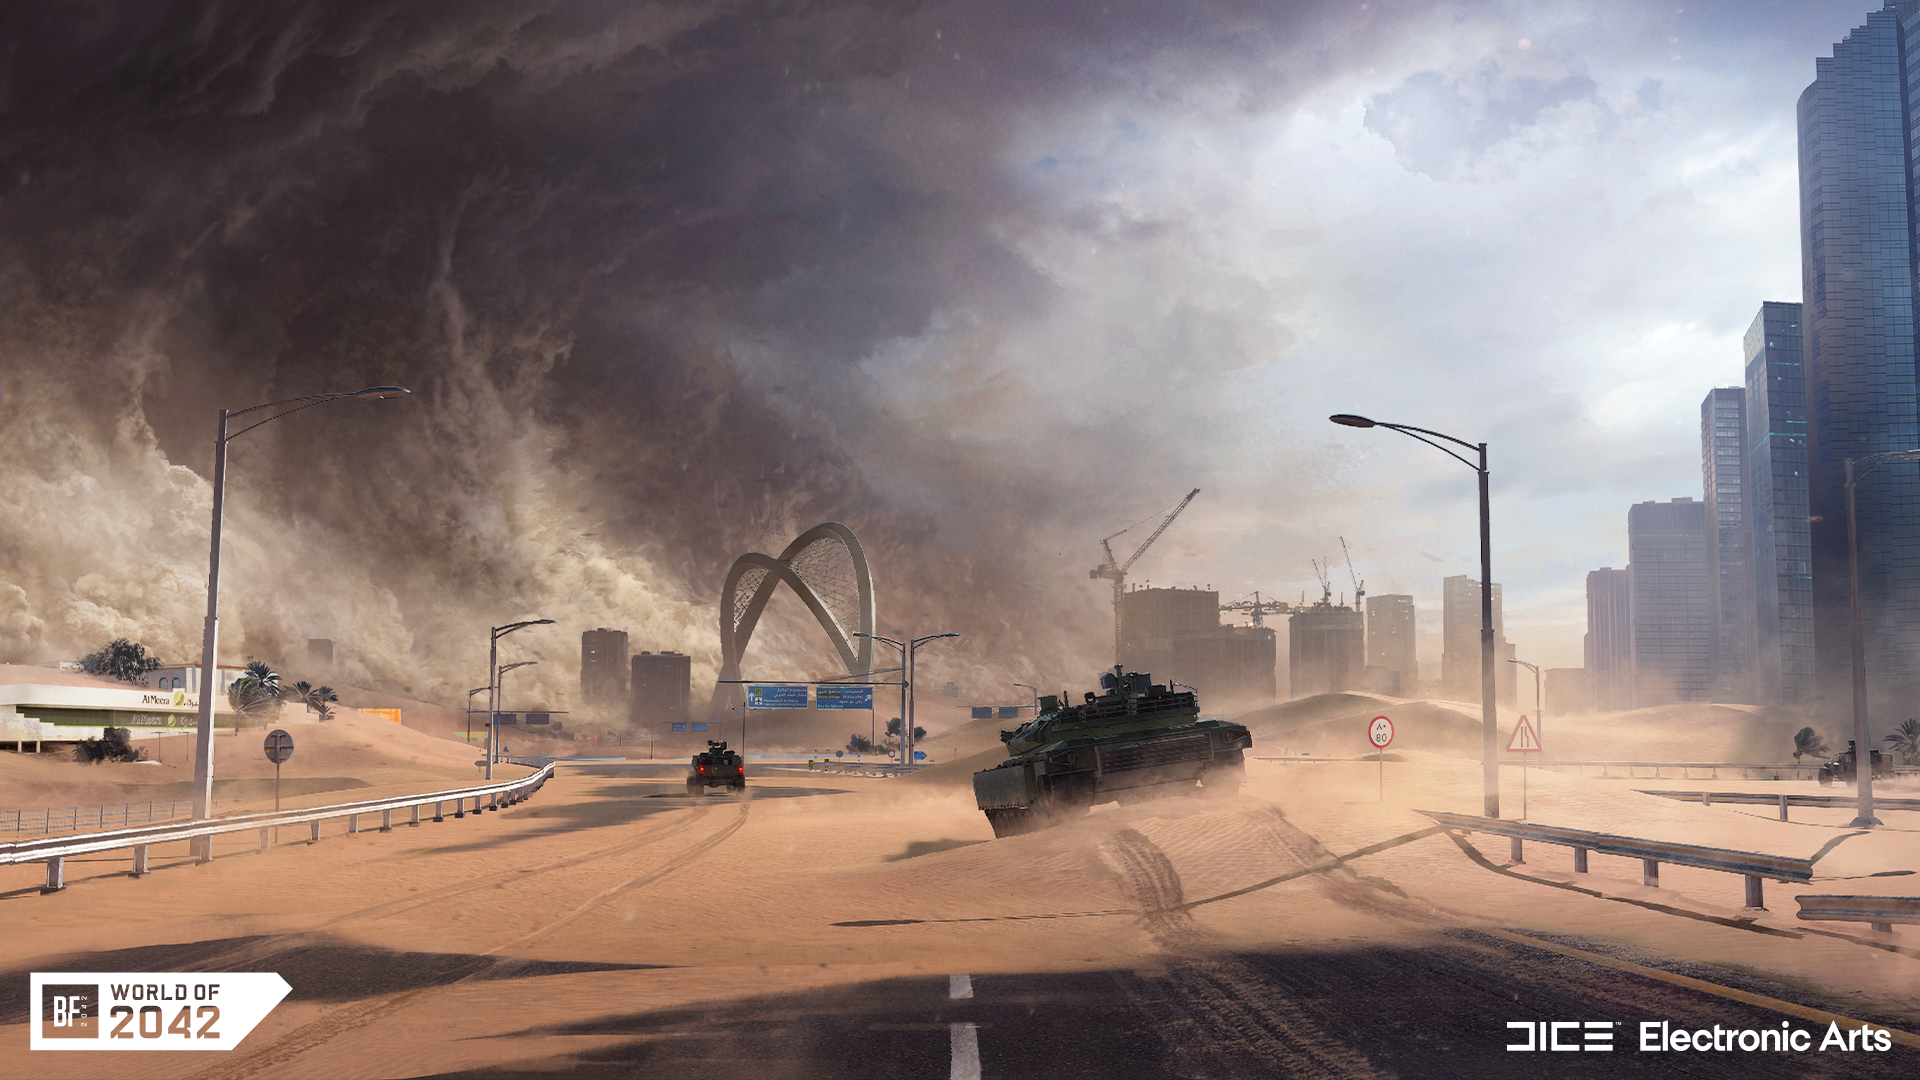 Battlefield Briefing_ The World of 2042 - Doha